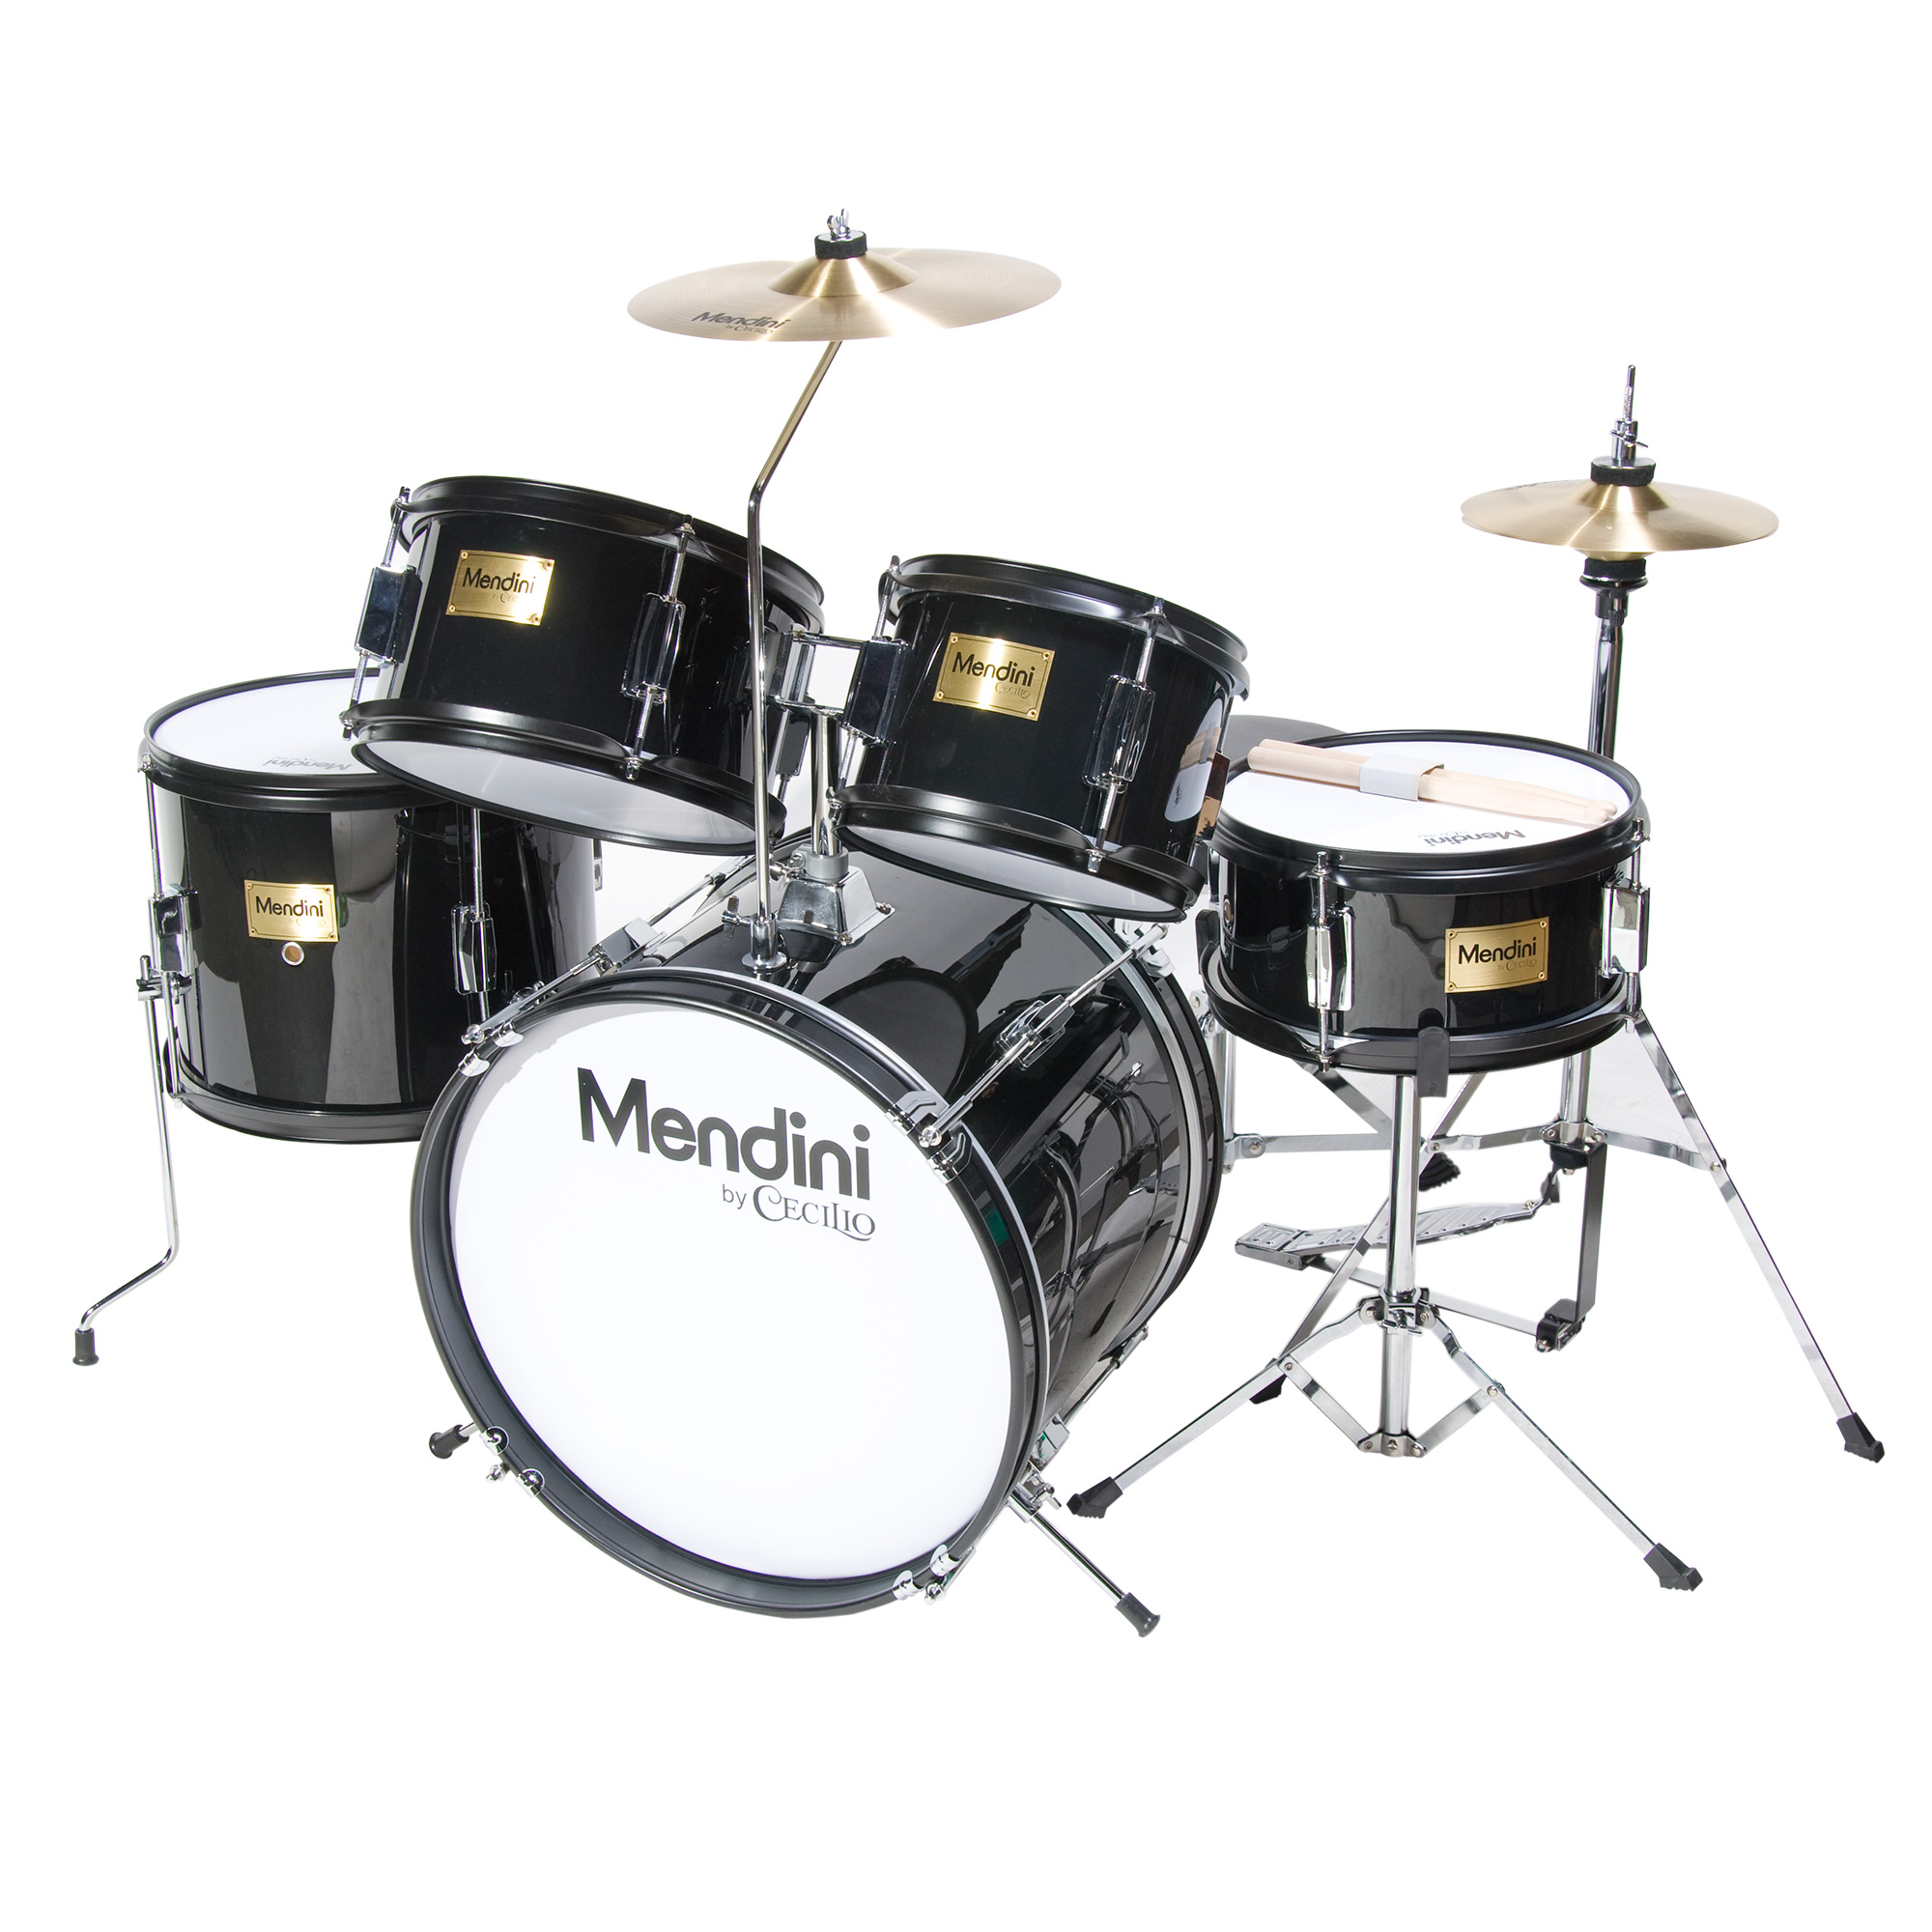 Mendini By Cecilio 16 5 Piece Complete Kids Junior Drum Set With